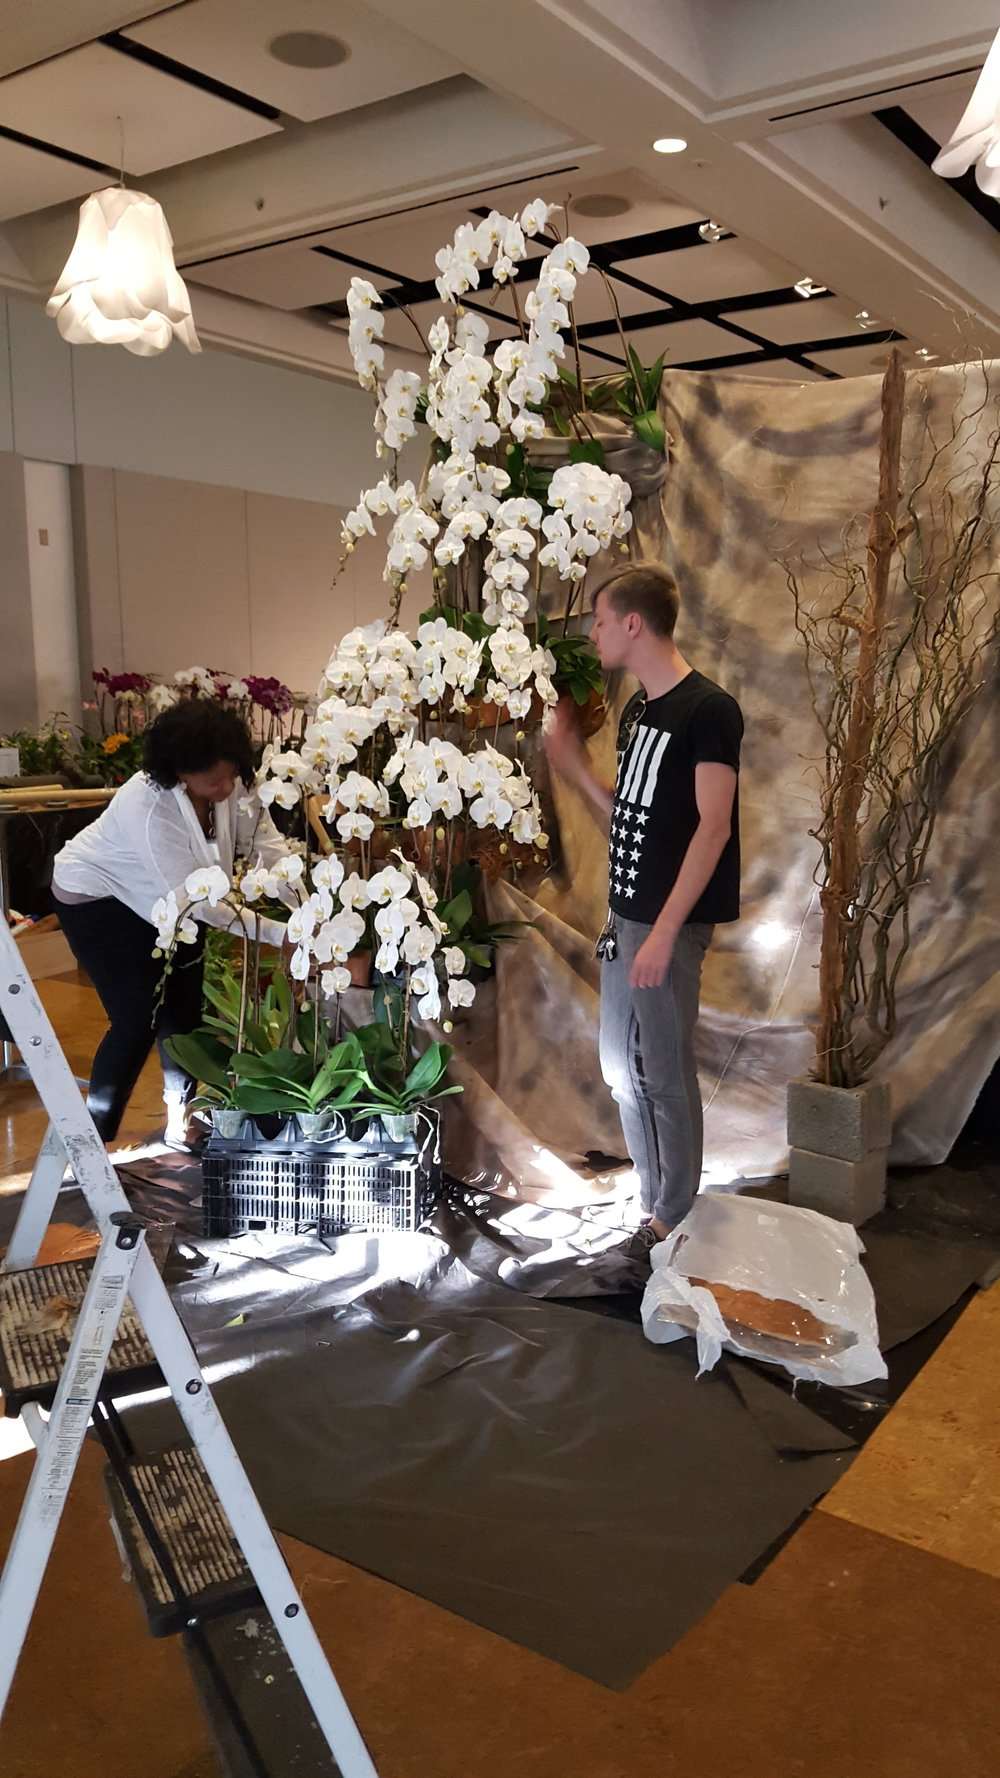 Saundra Nixon and Kyle Broflovski help assemble the exhibit.